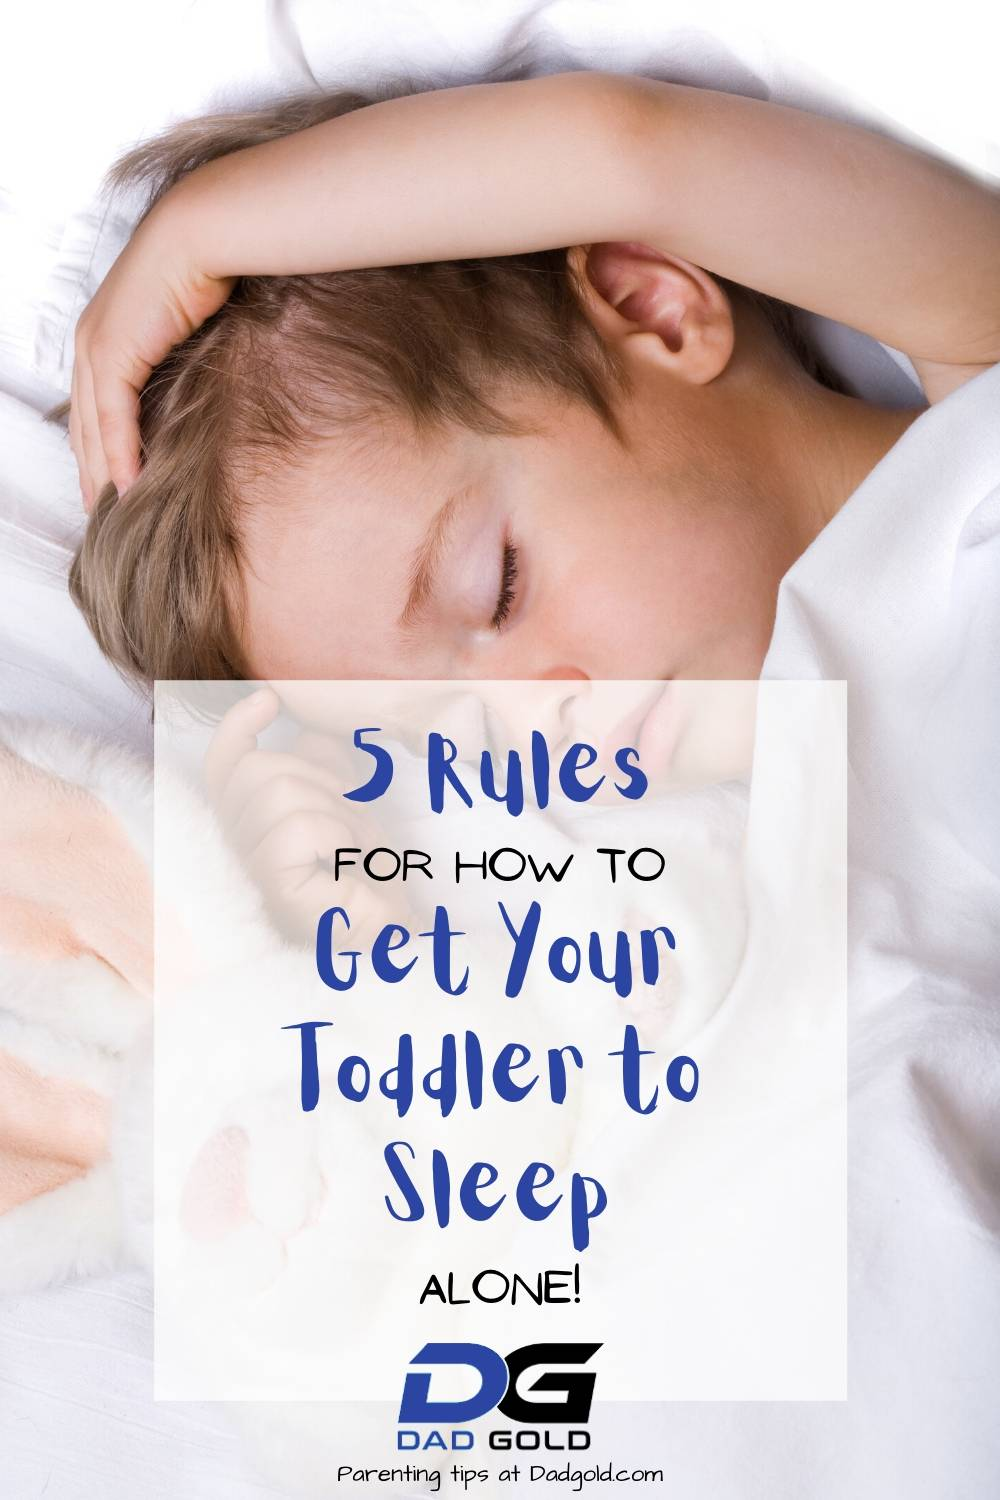 5 Rules For How to Get Your Toddler to Sleep Alone